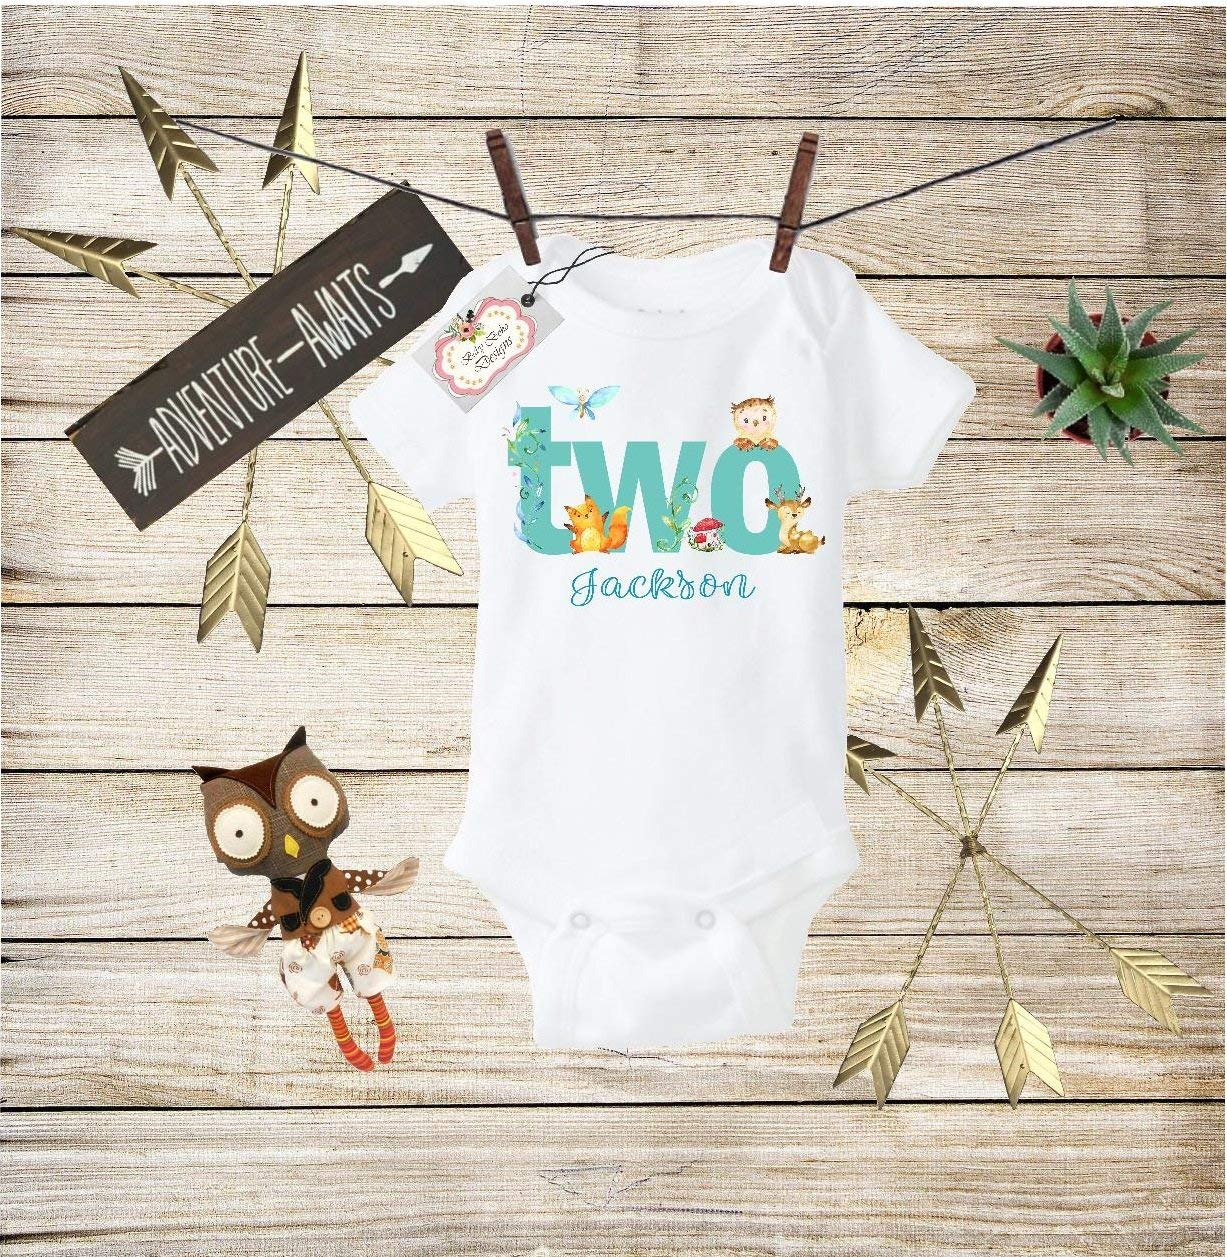 bdeb73cff Get Quotations · Boho Baby Clothes Second Birthday Bodysuit Personalized  Baby Boho Outfit Boho Baby Outfit Second Birthday Gift